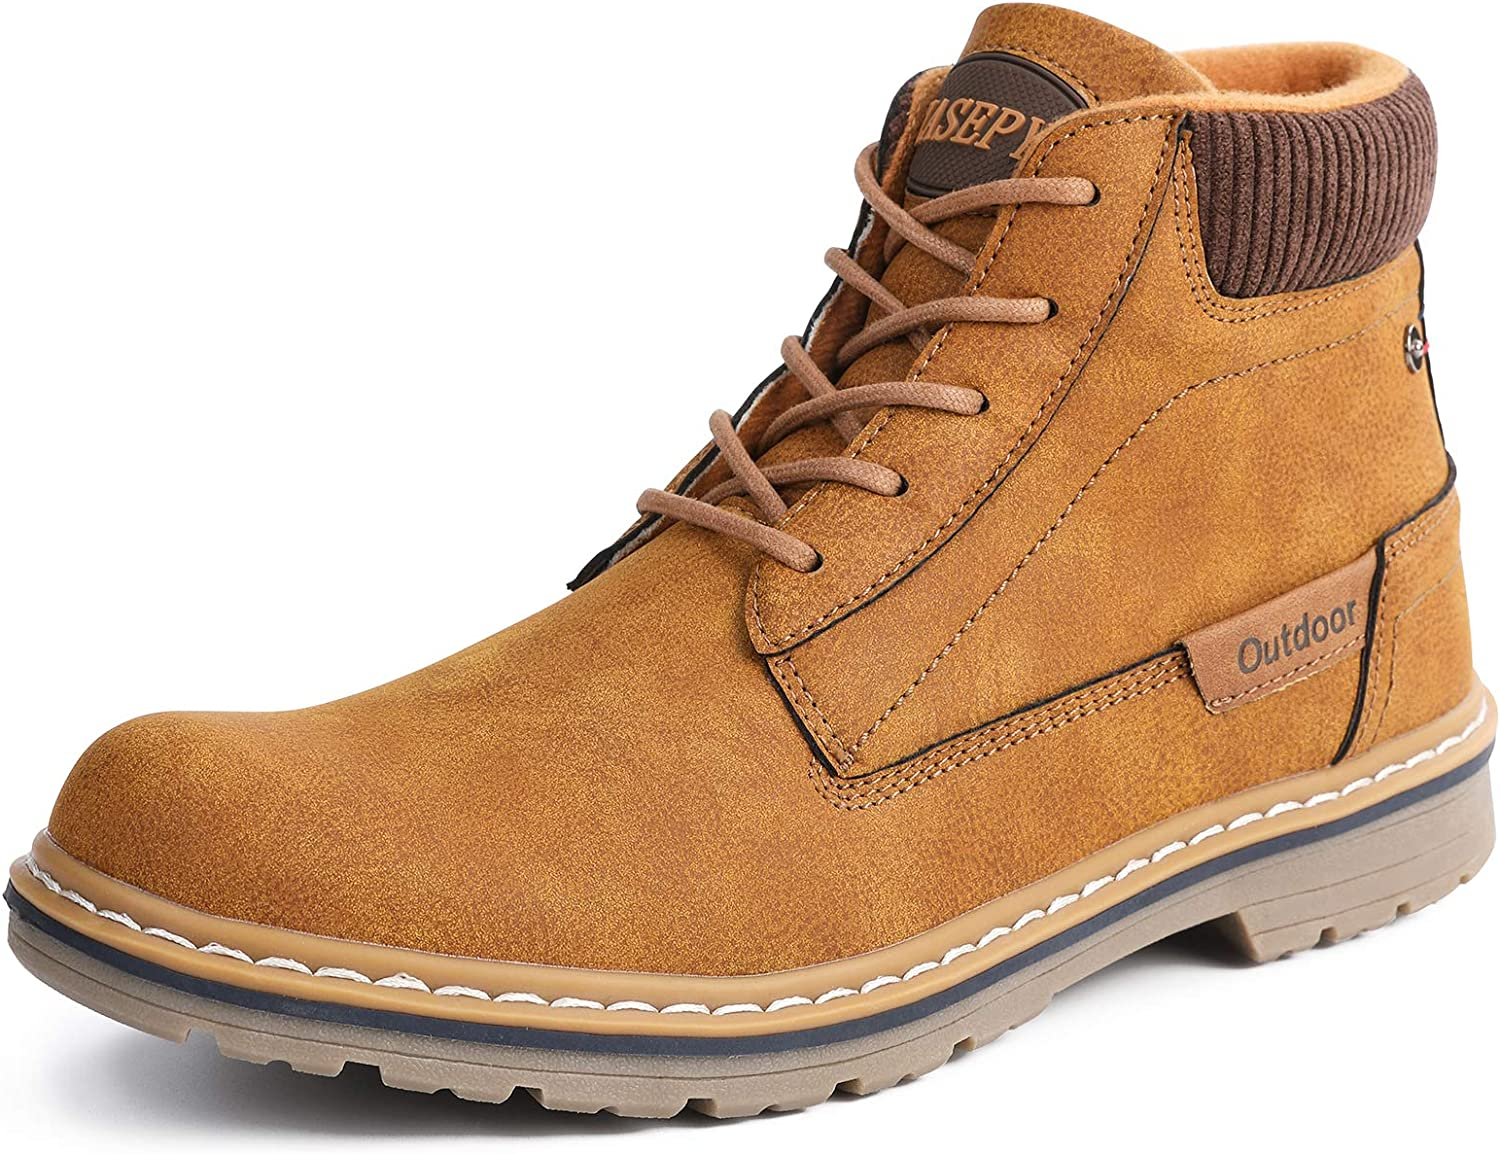 ZASEPY Mens Boots Anti-Slip Water Resistant Leather Outdoor Shoes Casual Boot for Men